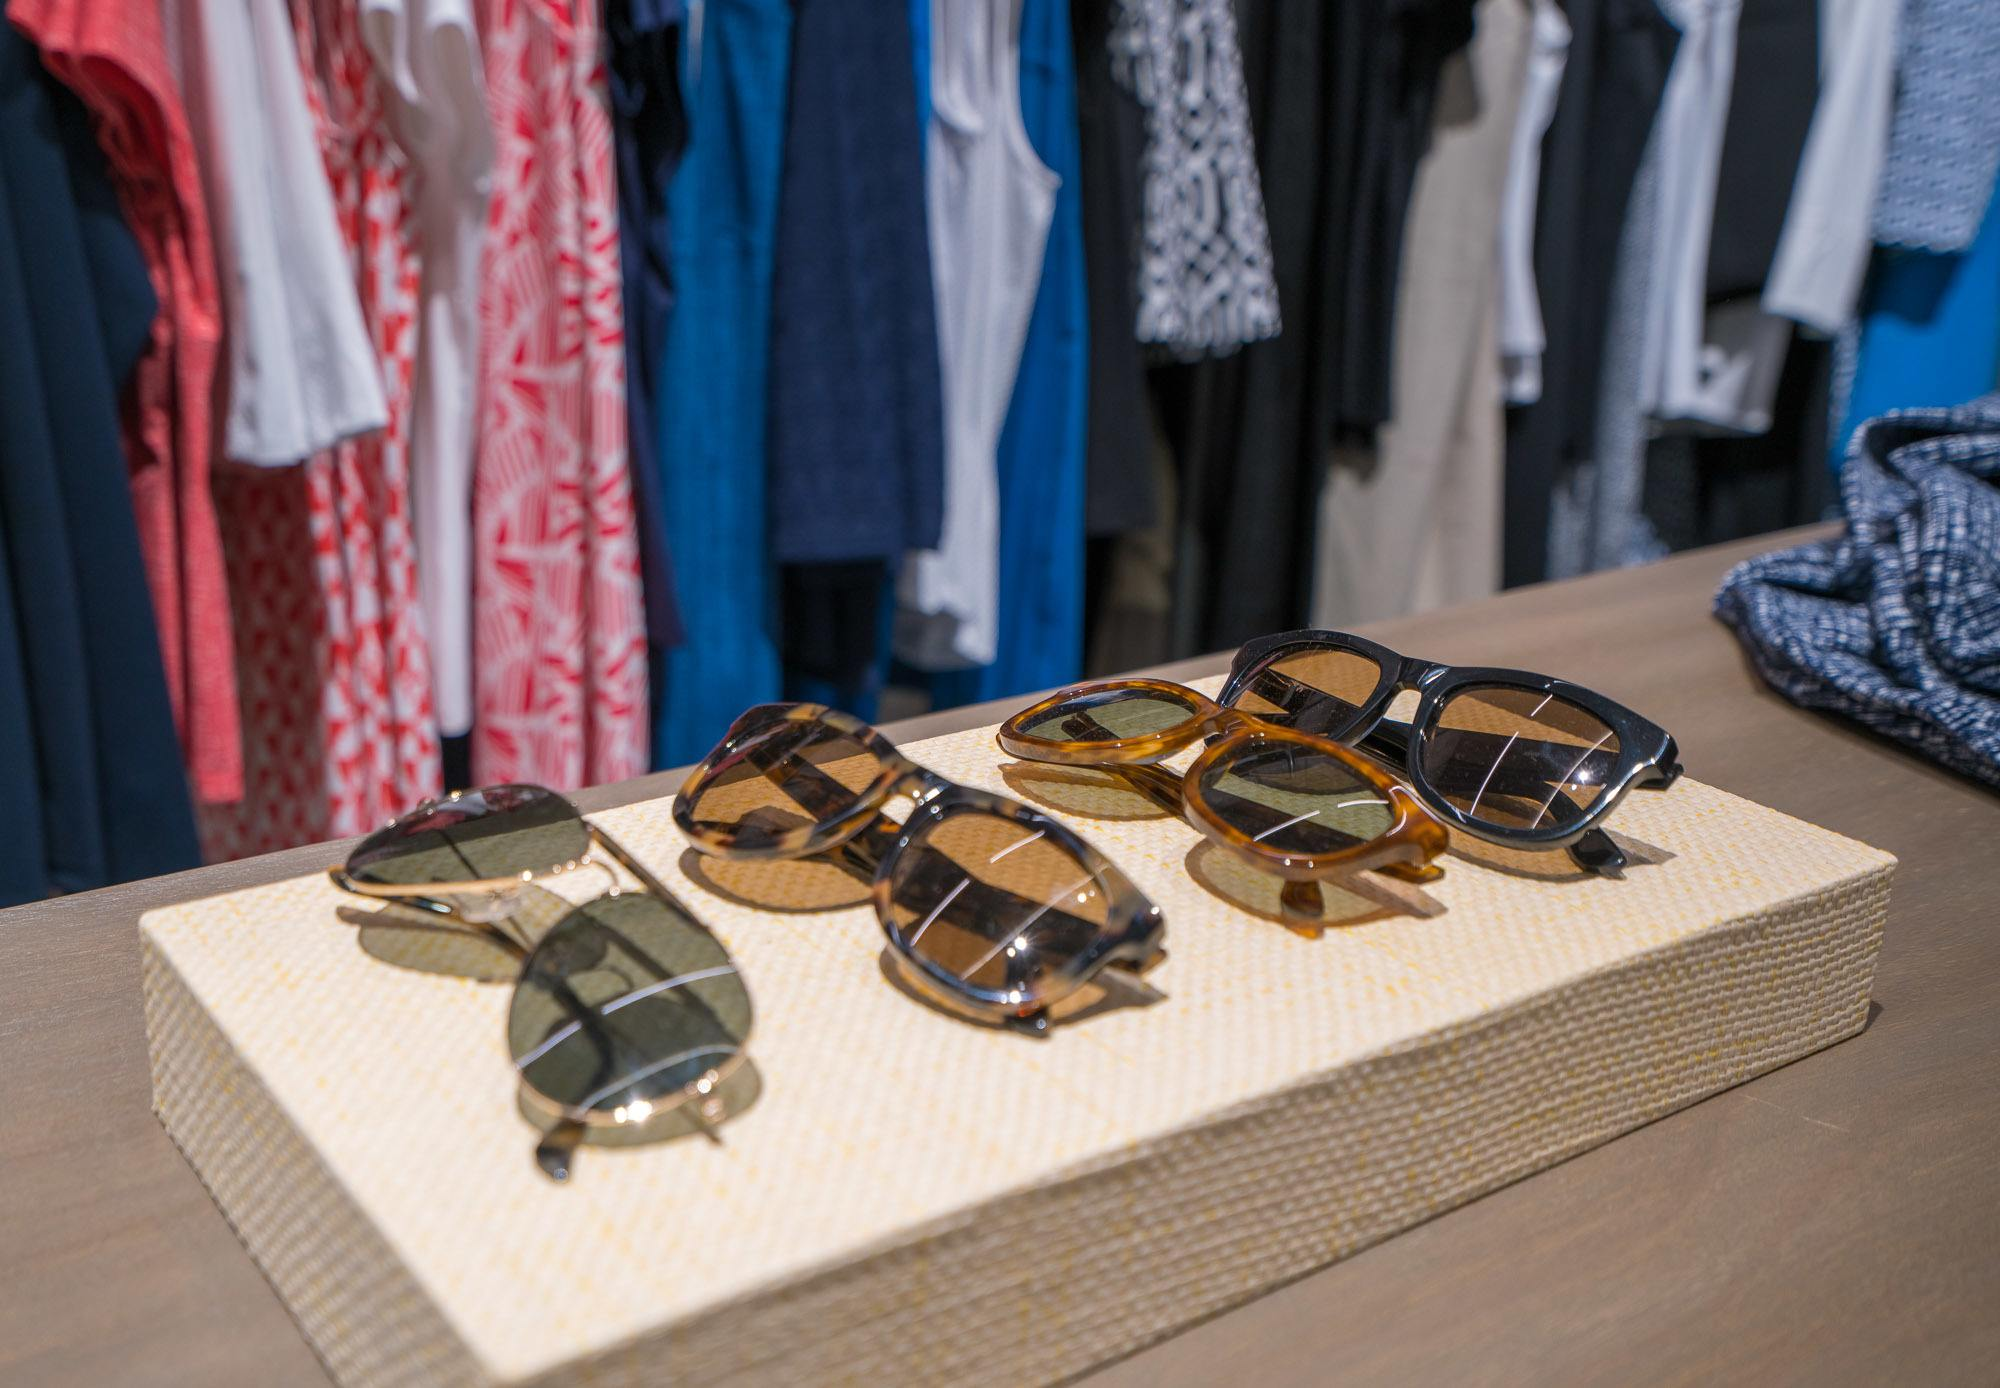 Polarized sunglasses at J.McLaughlin